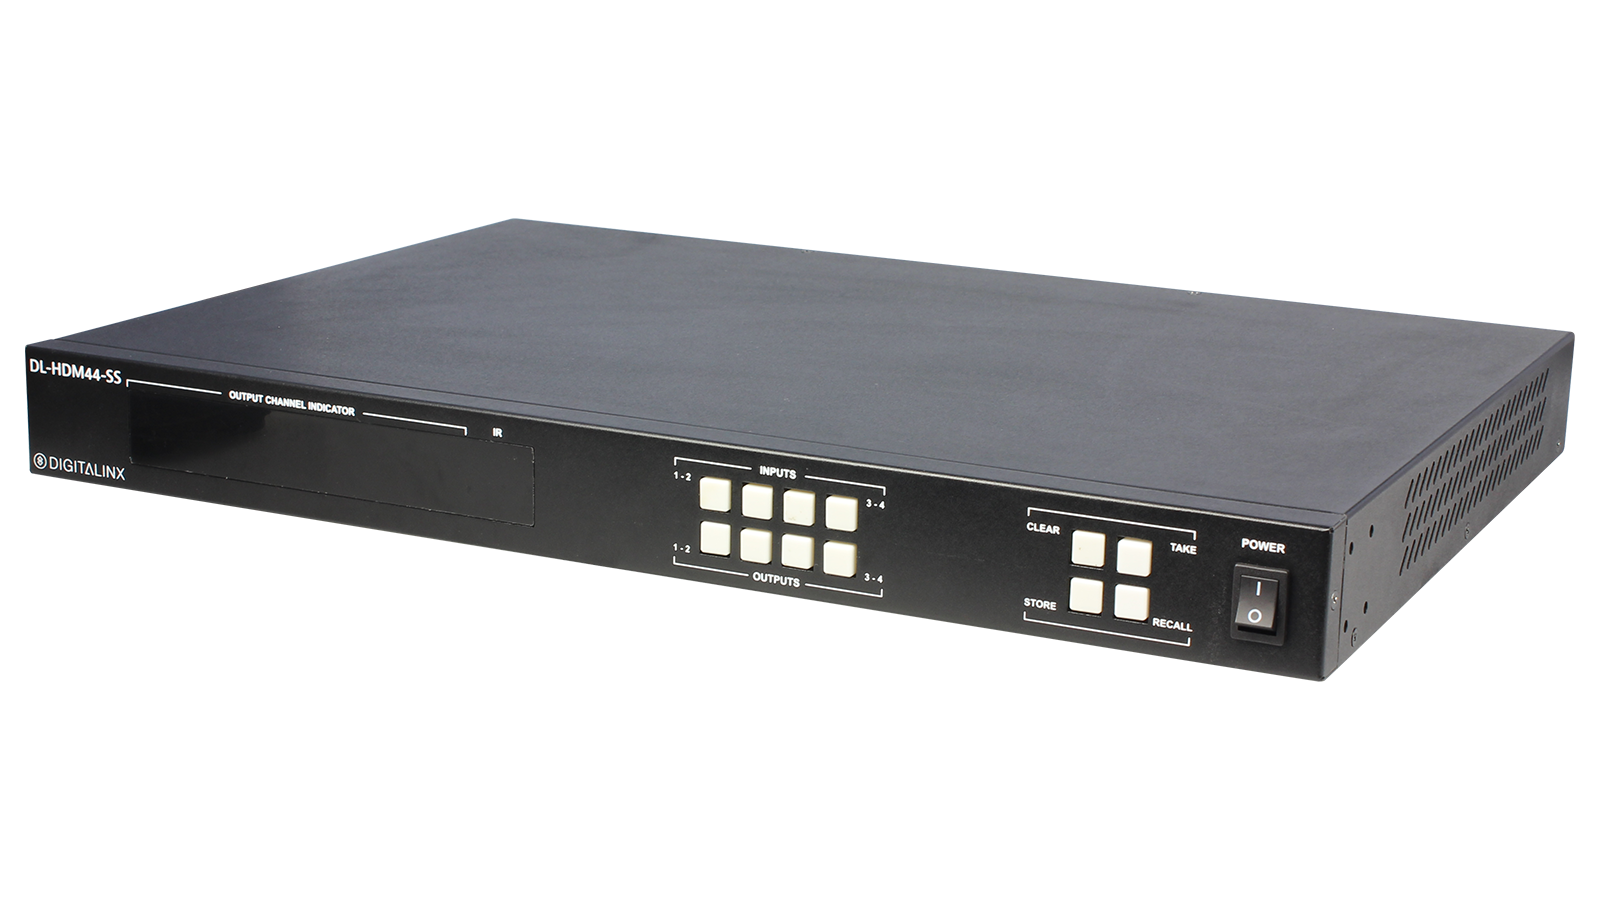 Dl Hdm44 Ss 4x4 Hdmi Matrix 20 4k60 444 Hdcp 22 Compliant Project 3a 8211 60 100w Hi Fi Power Amplifier An Error Occurred